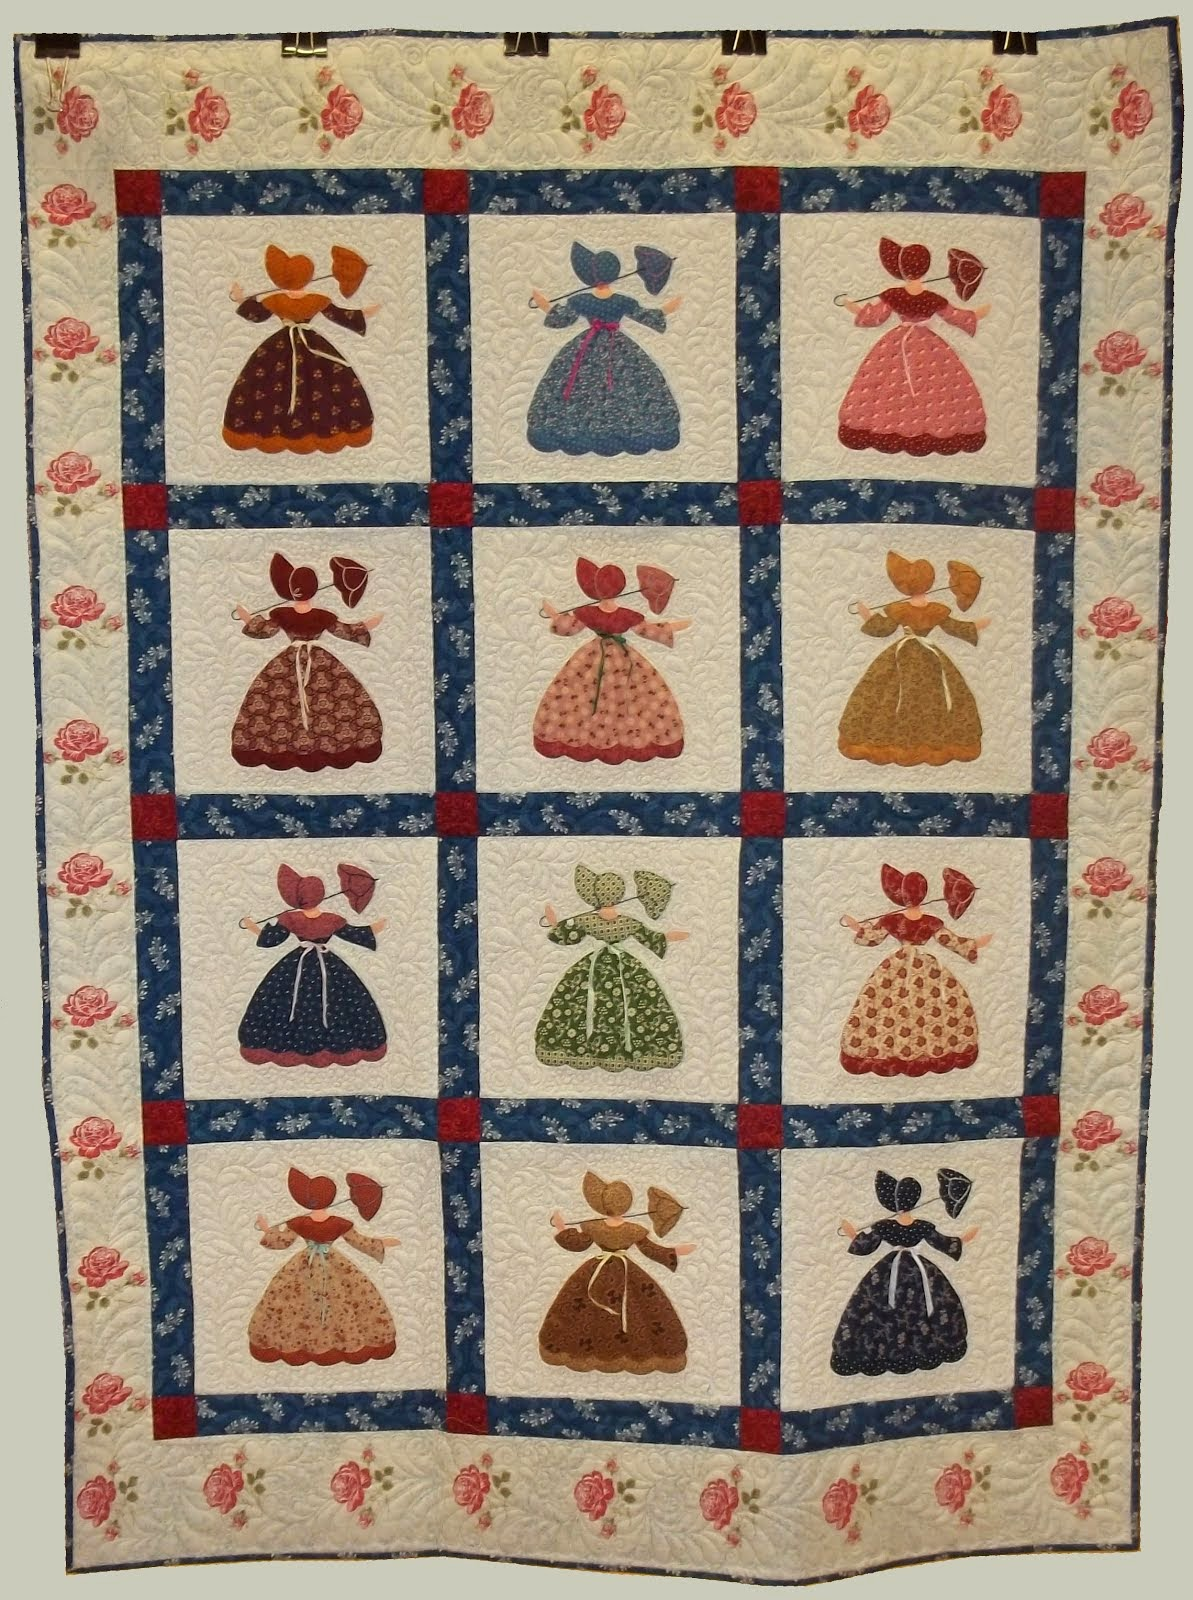 First Prize in Quilting!